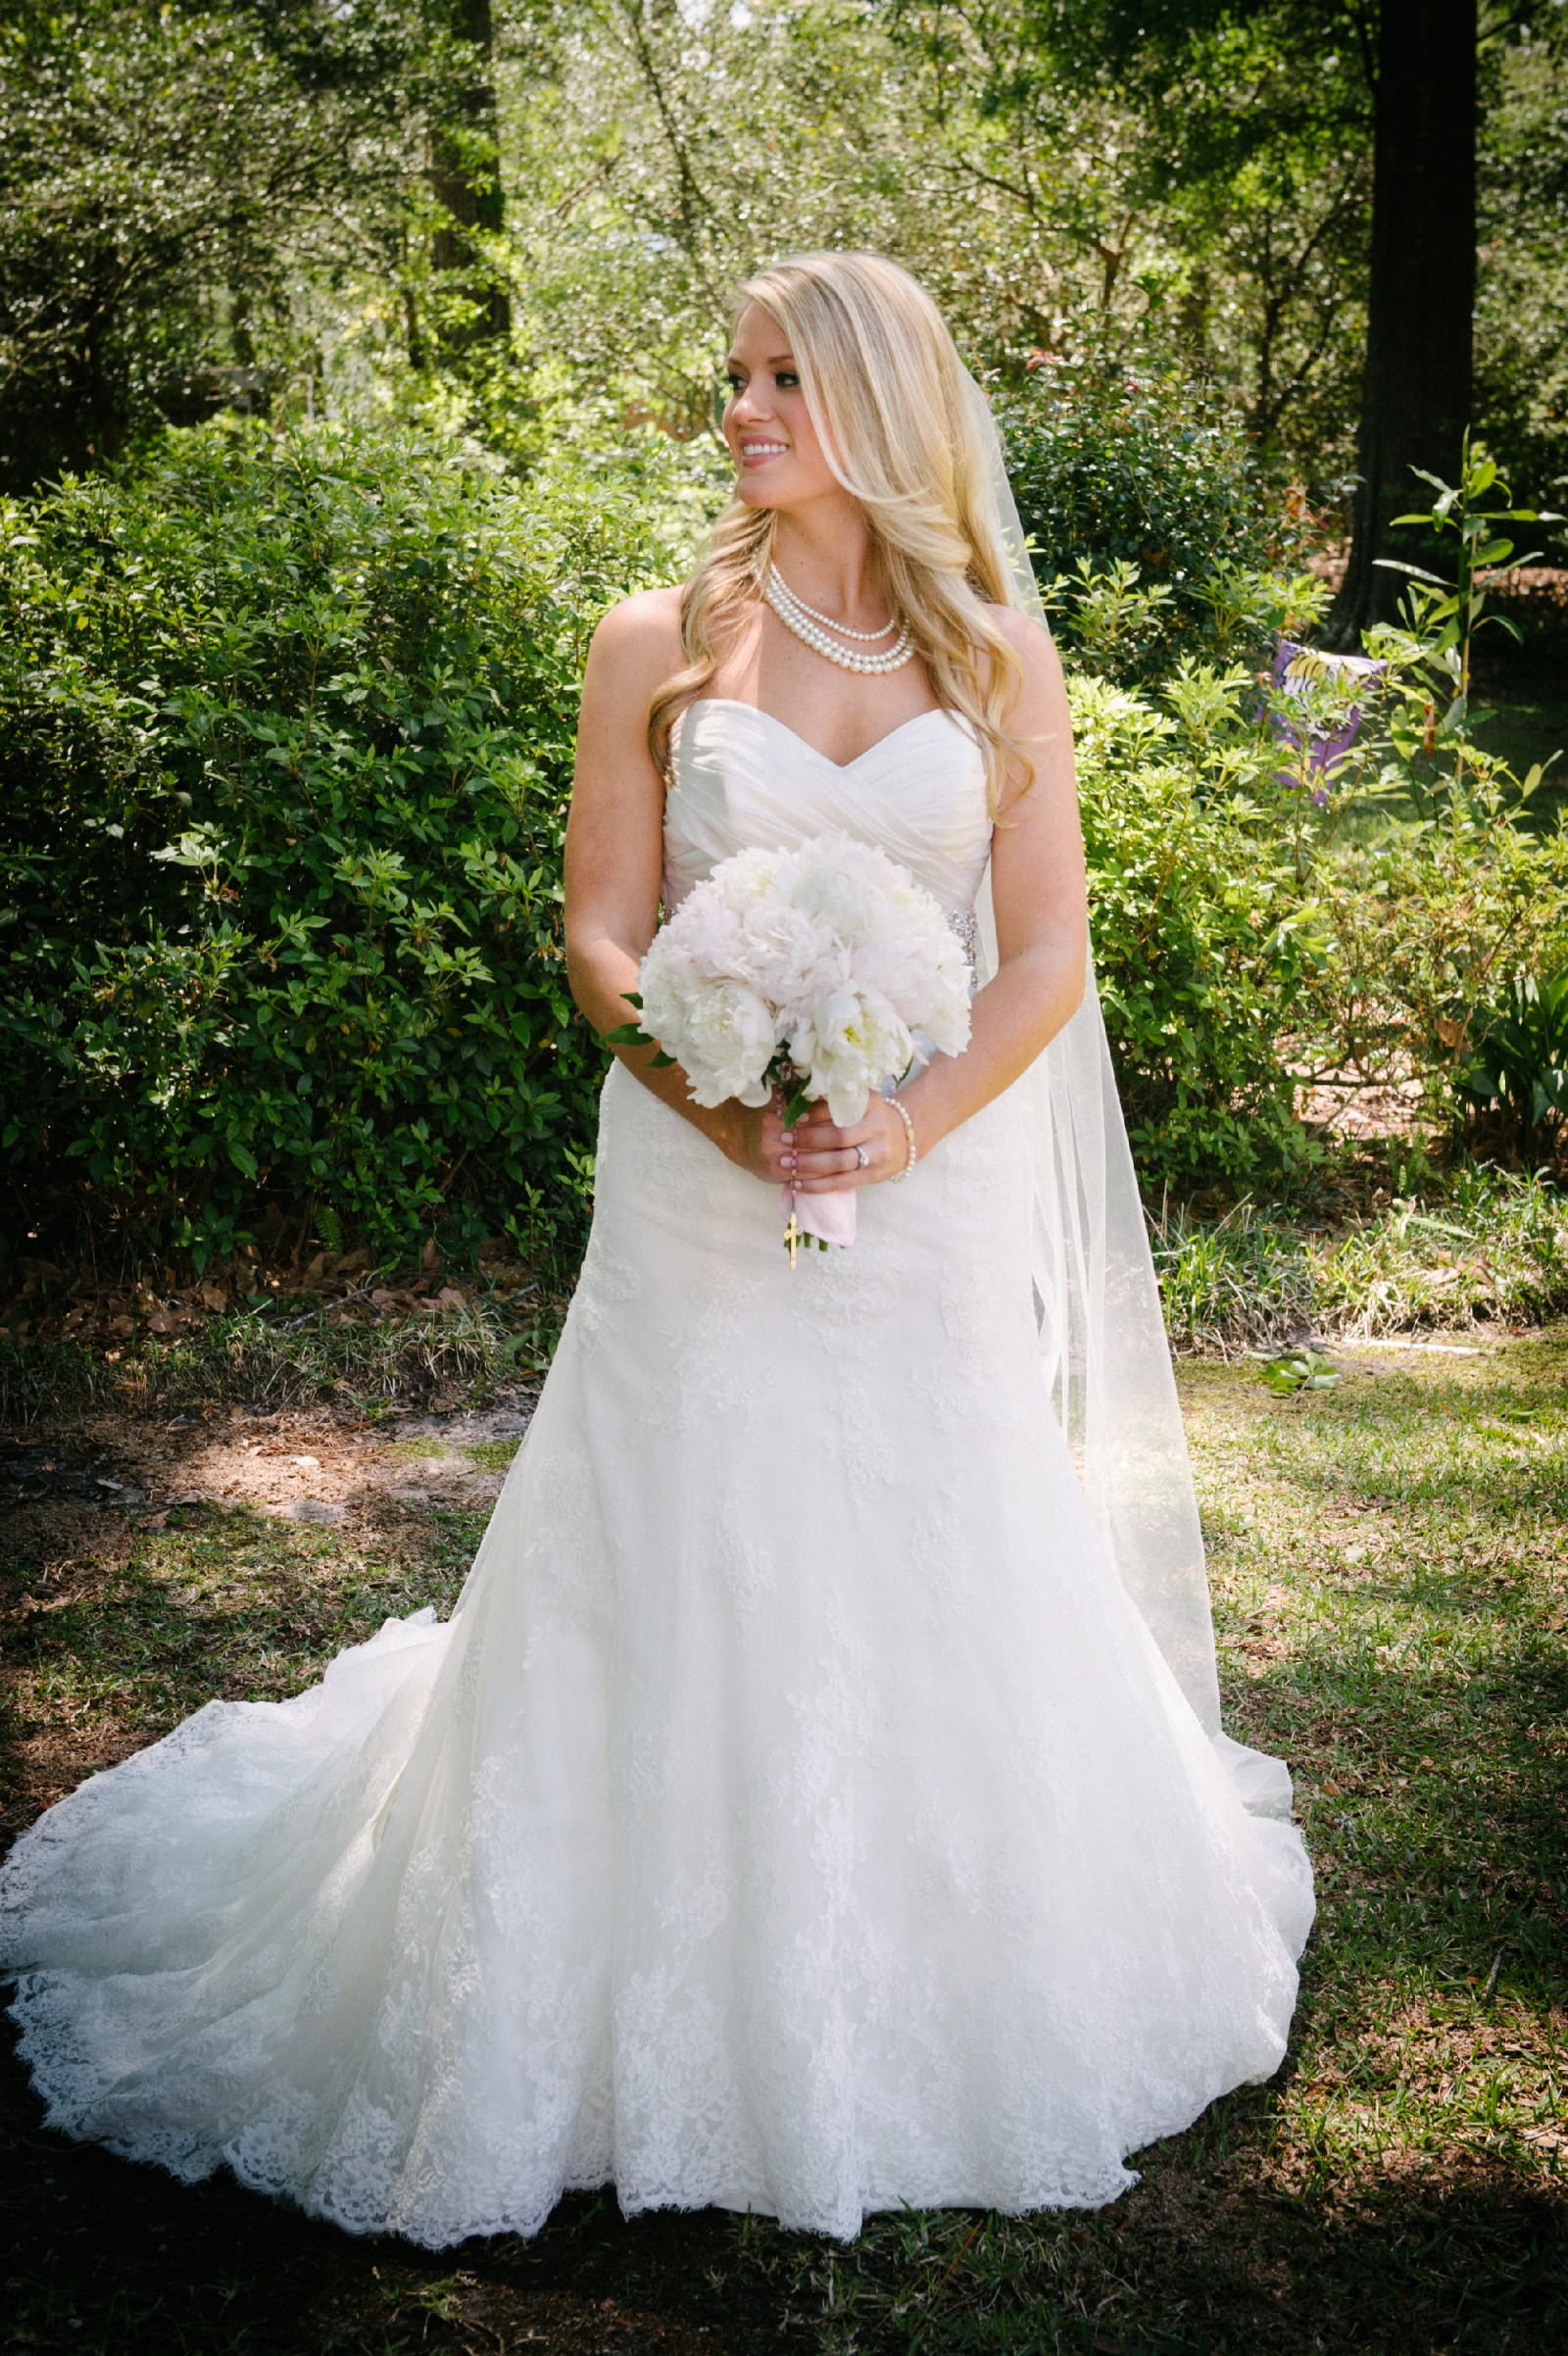 Sell used wedding dress greenville sc cheap wedding dresses for Sell preowned wedding dress